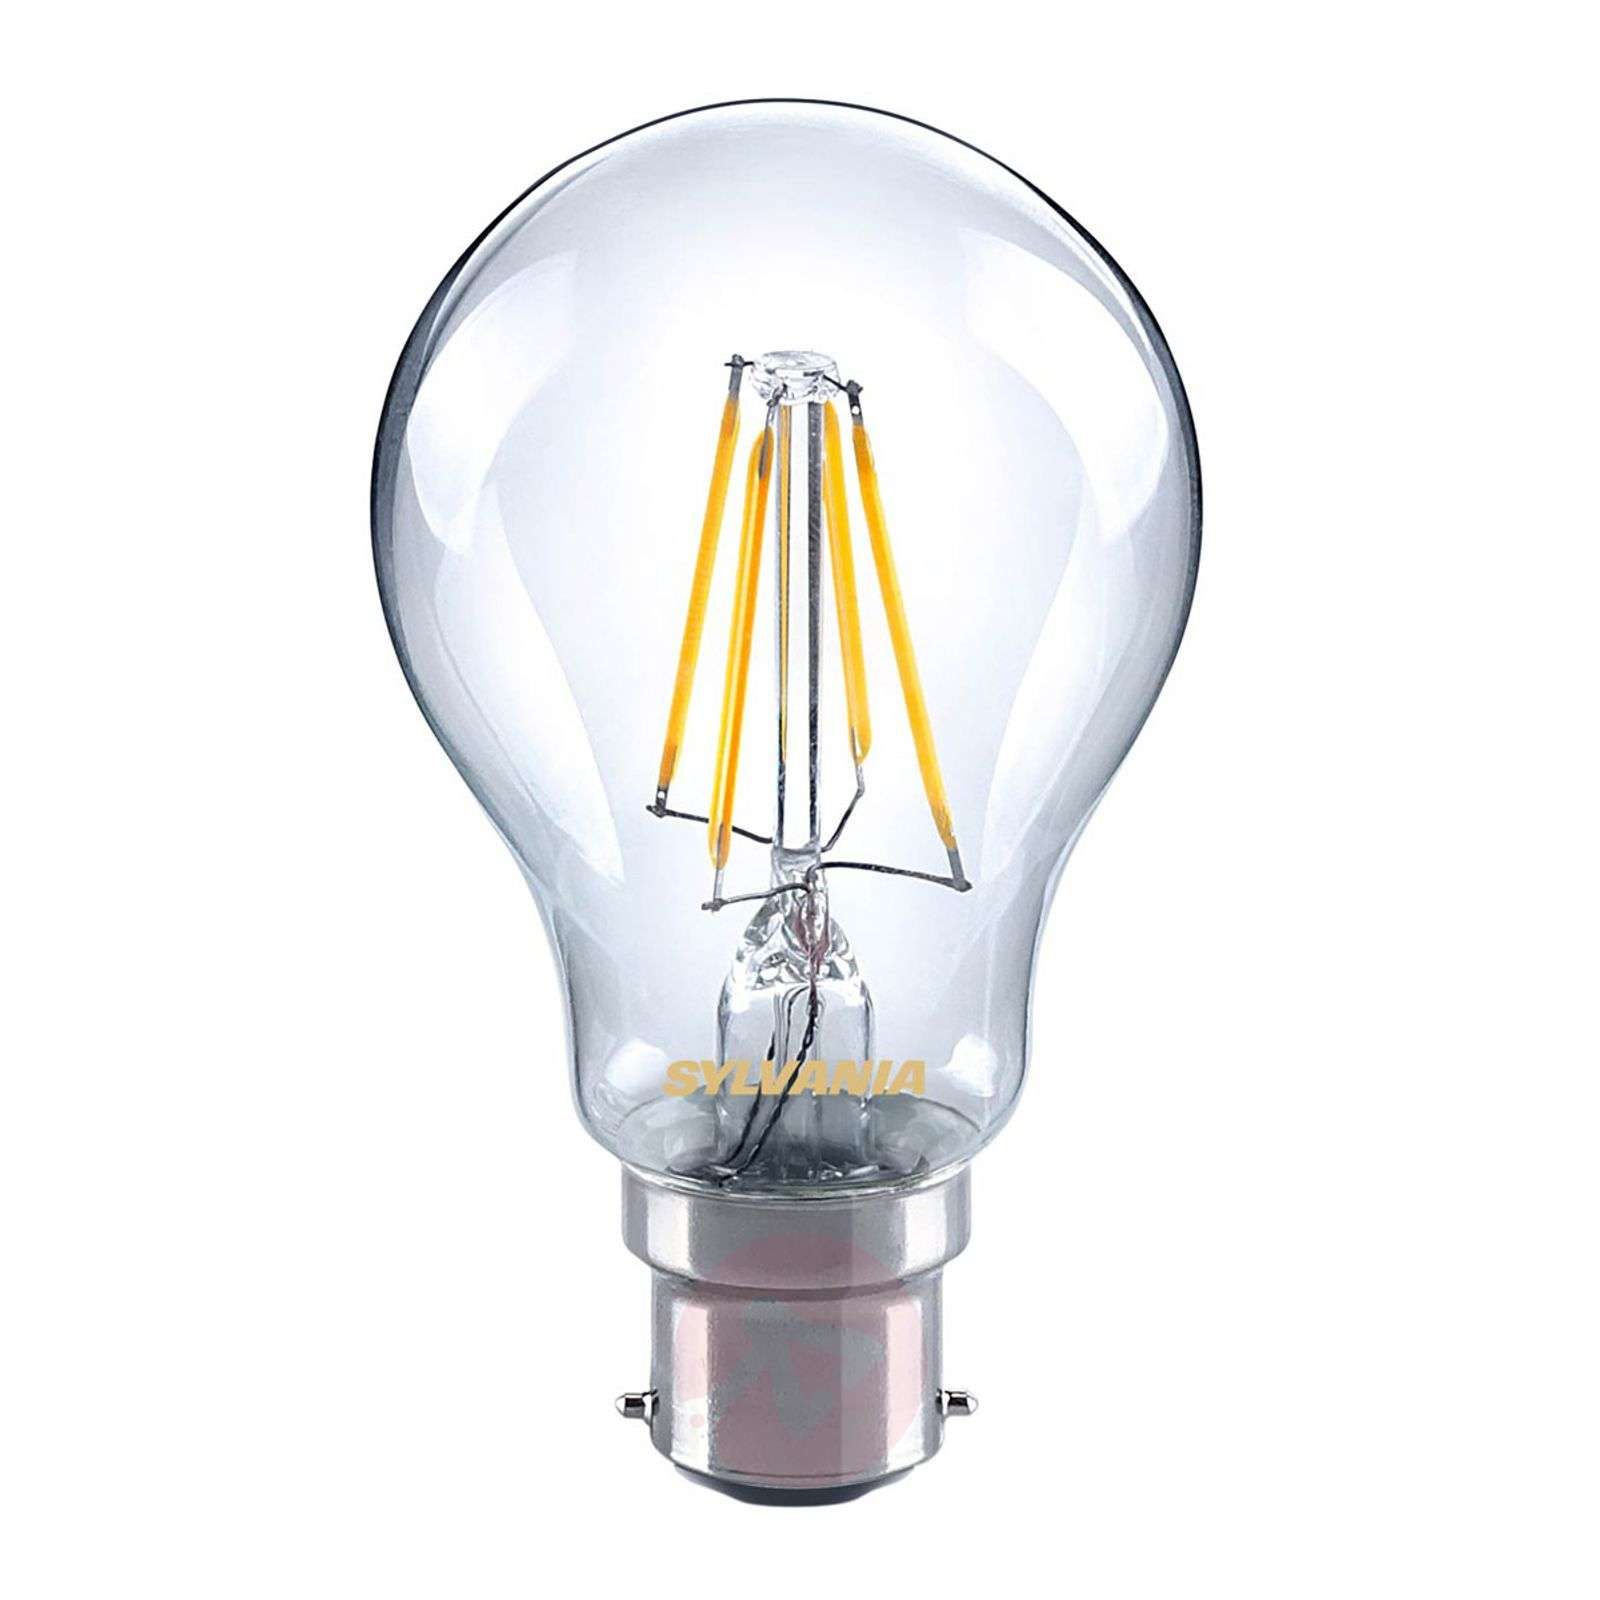 B22 4W 827 LED filament lamp, helder-8530197-01